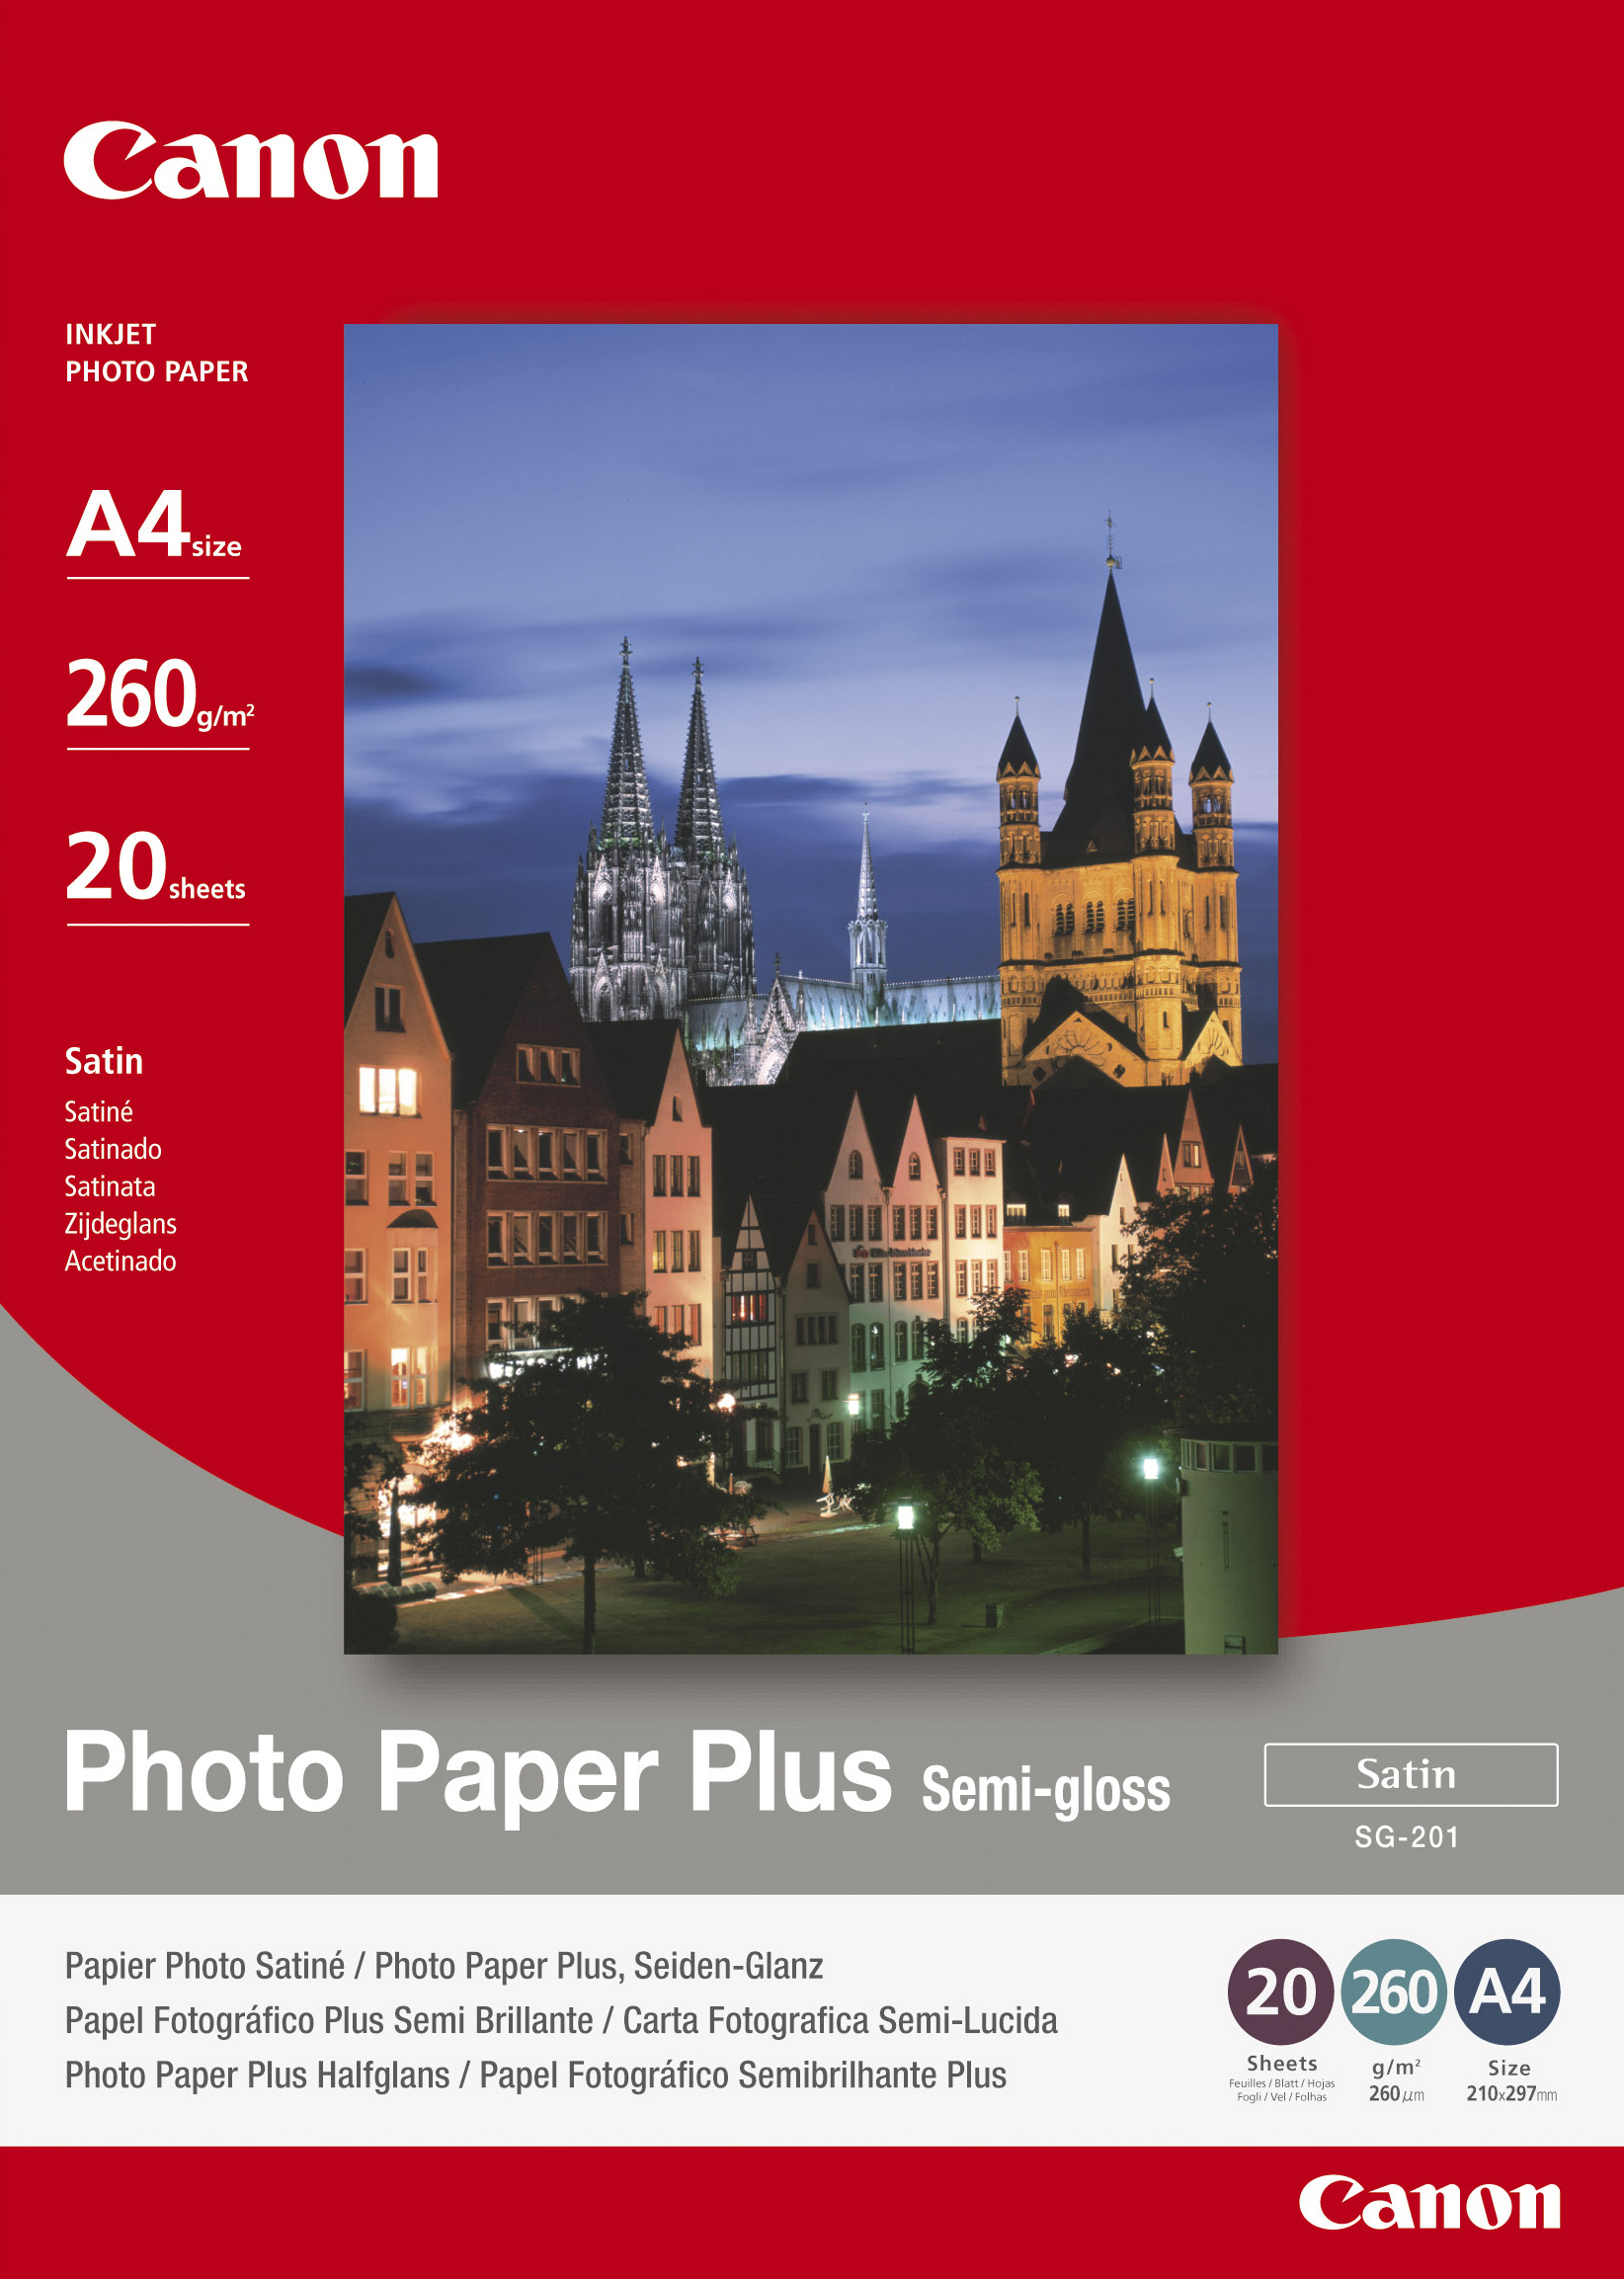 Can31014       Canon Sg-201 A4 20sheets       Bj Media                                                     - UF01